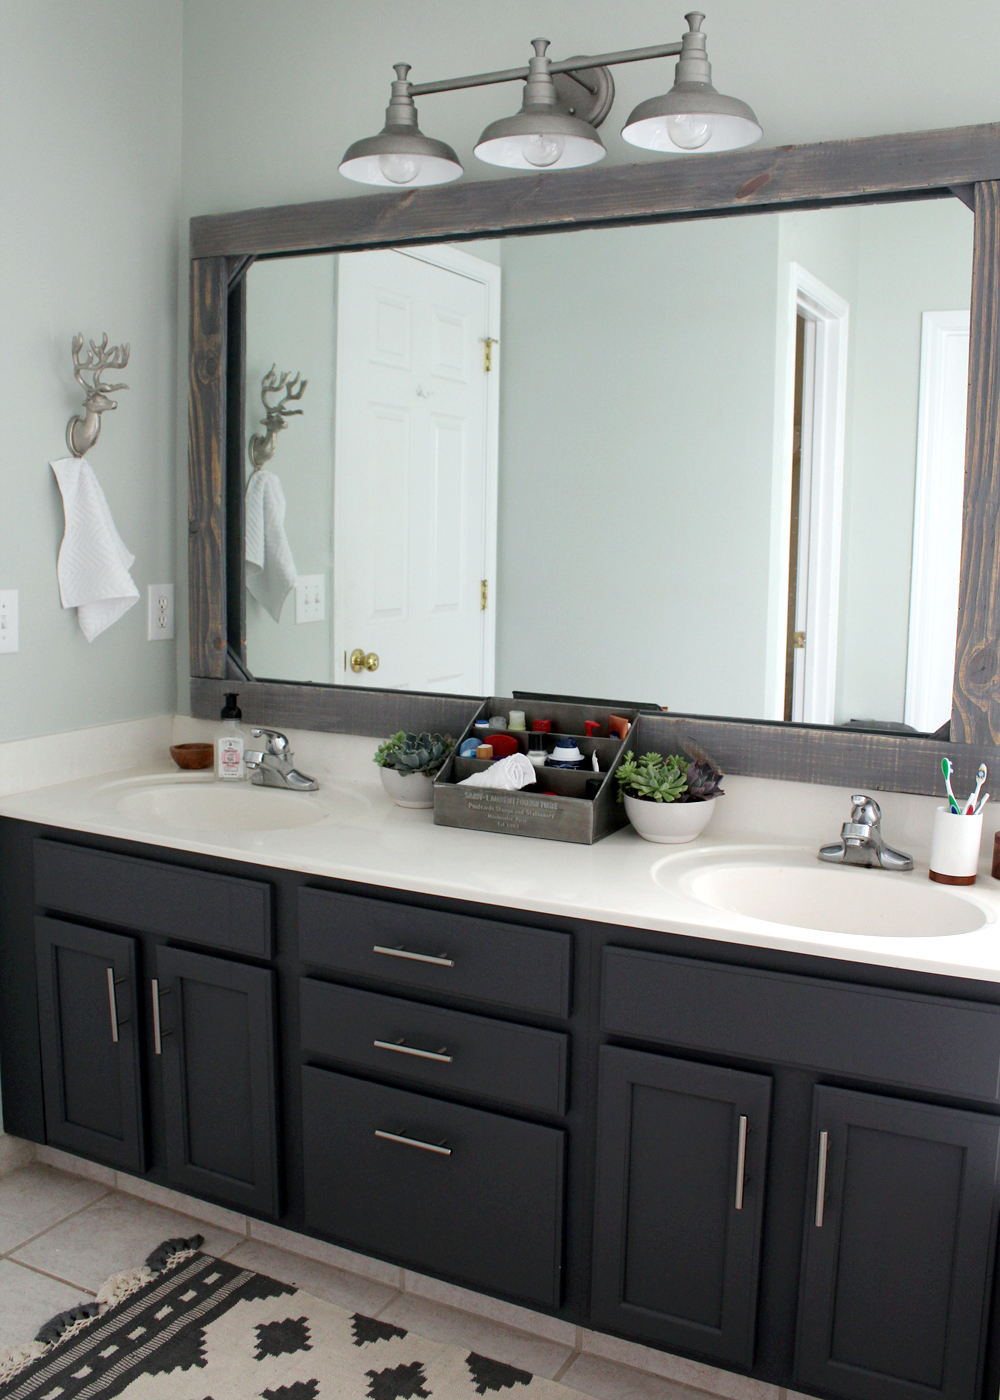 Master Bathroom Remodel Tag Tibby - Bathroom updates on a budget